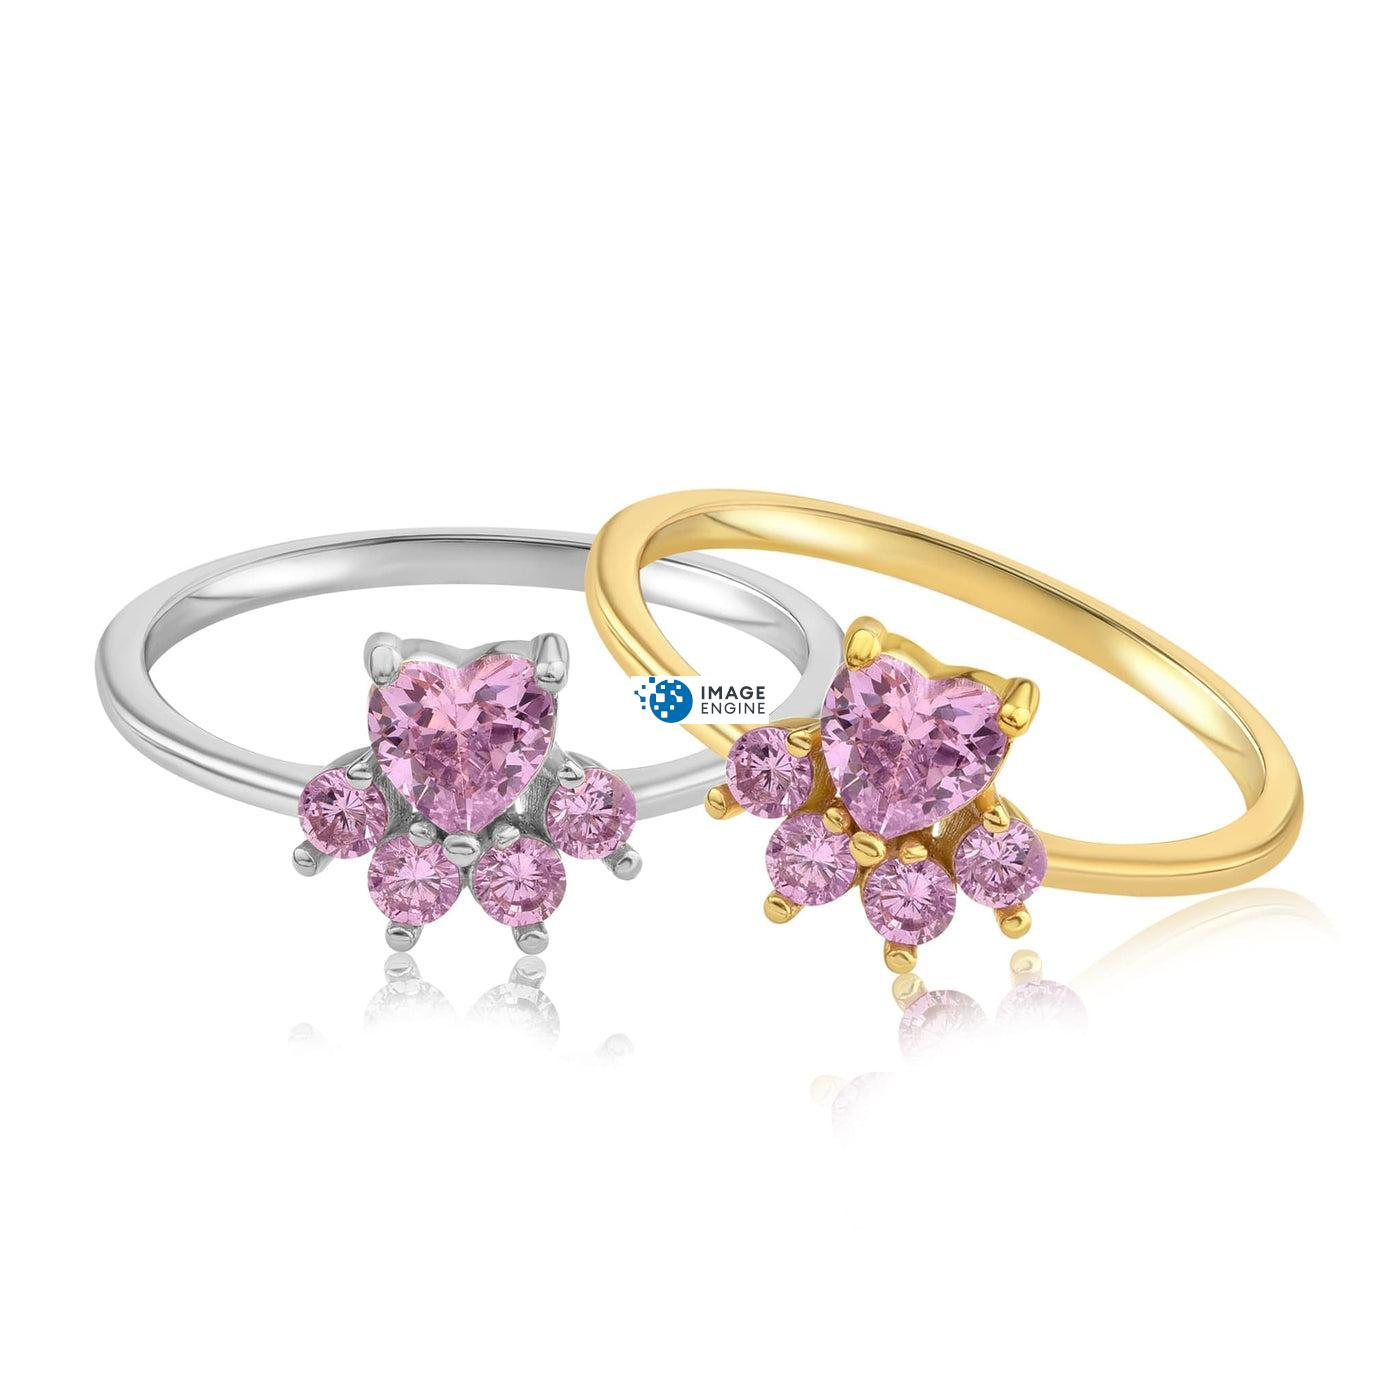 Bella Paw Rose Quartz Ring - Front View SideBy Side - 18K Yellow Gold Vermeil and 925 Sterling Silver